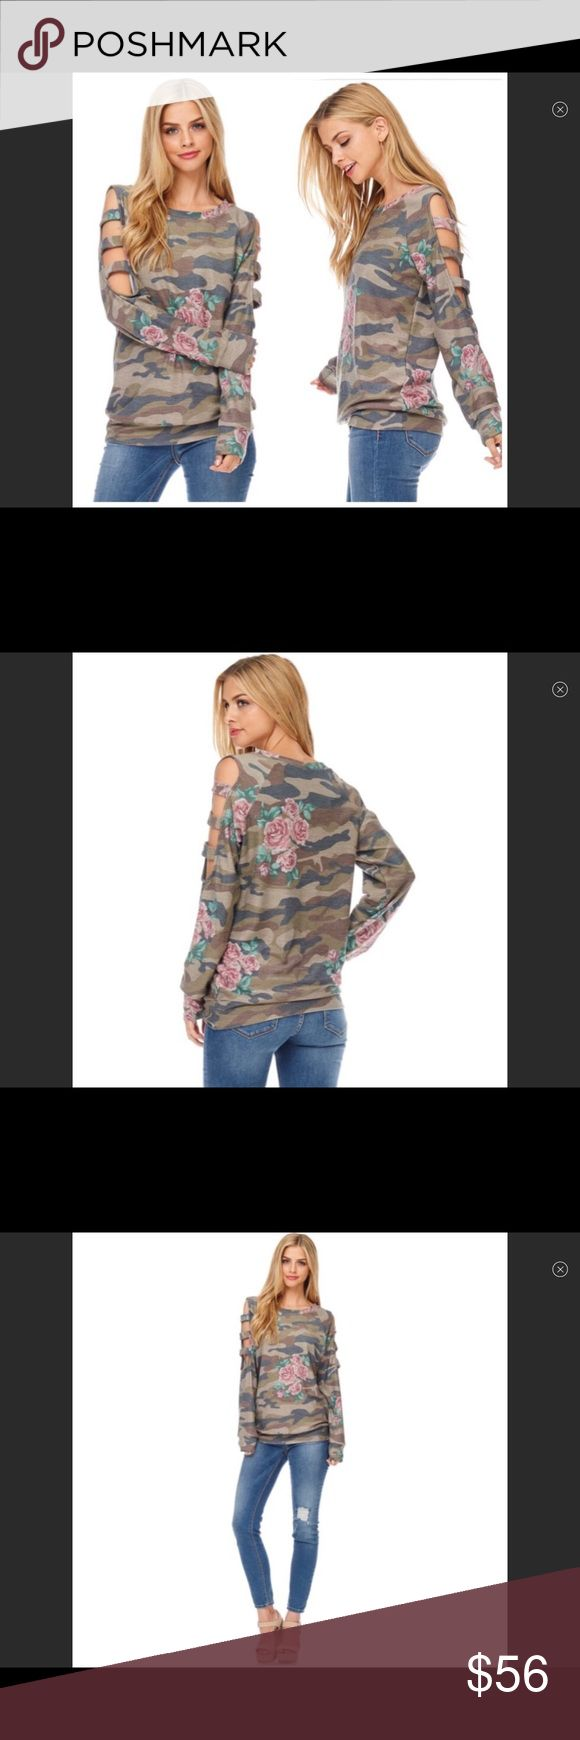 COMING SOON!  Camouflage Floral Ladder Top Camouflage floral ladder sleeve tunic top.  Polyester/Rayon/Spandex Couture Gypsy Tops Tunics